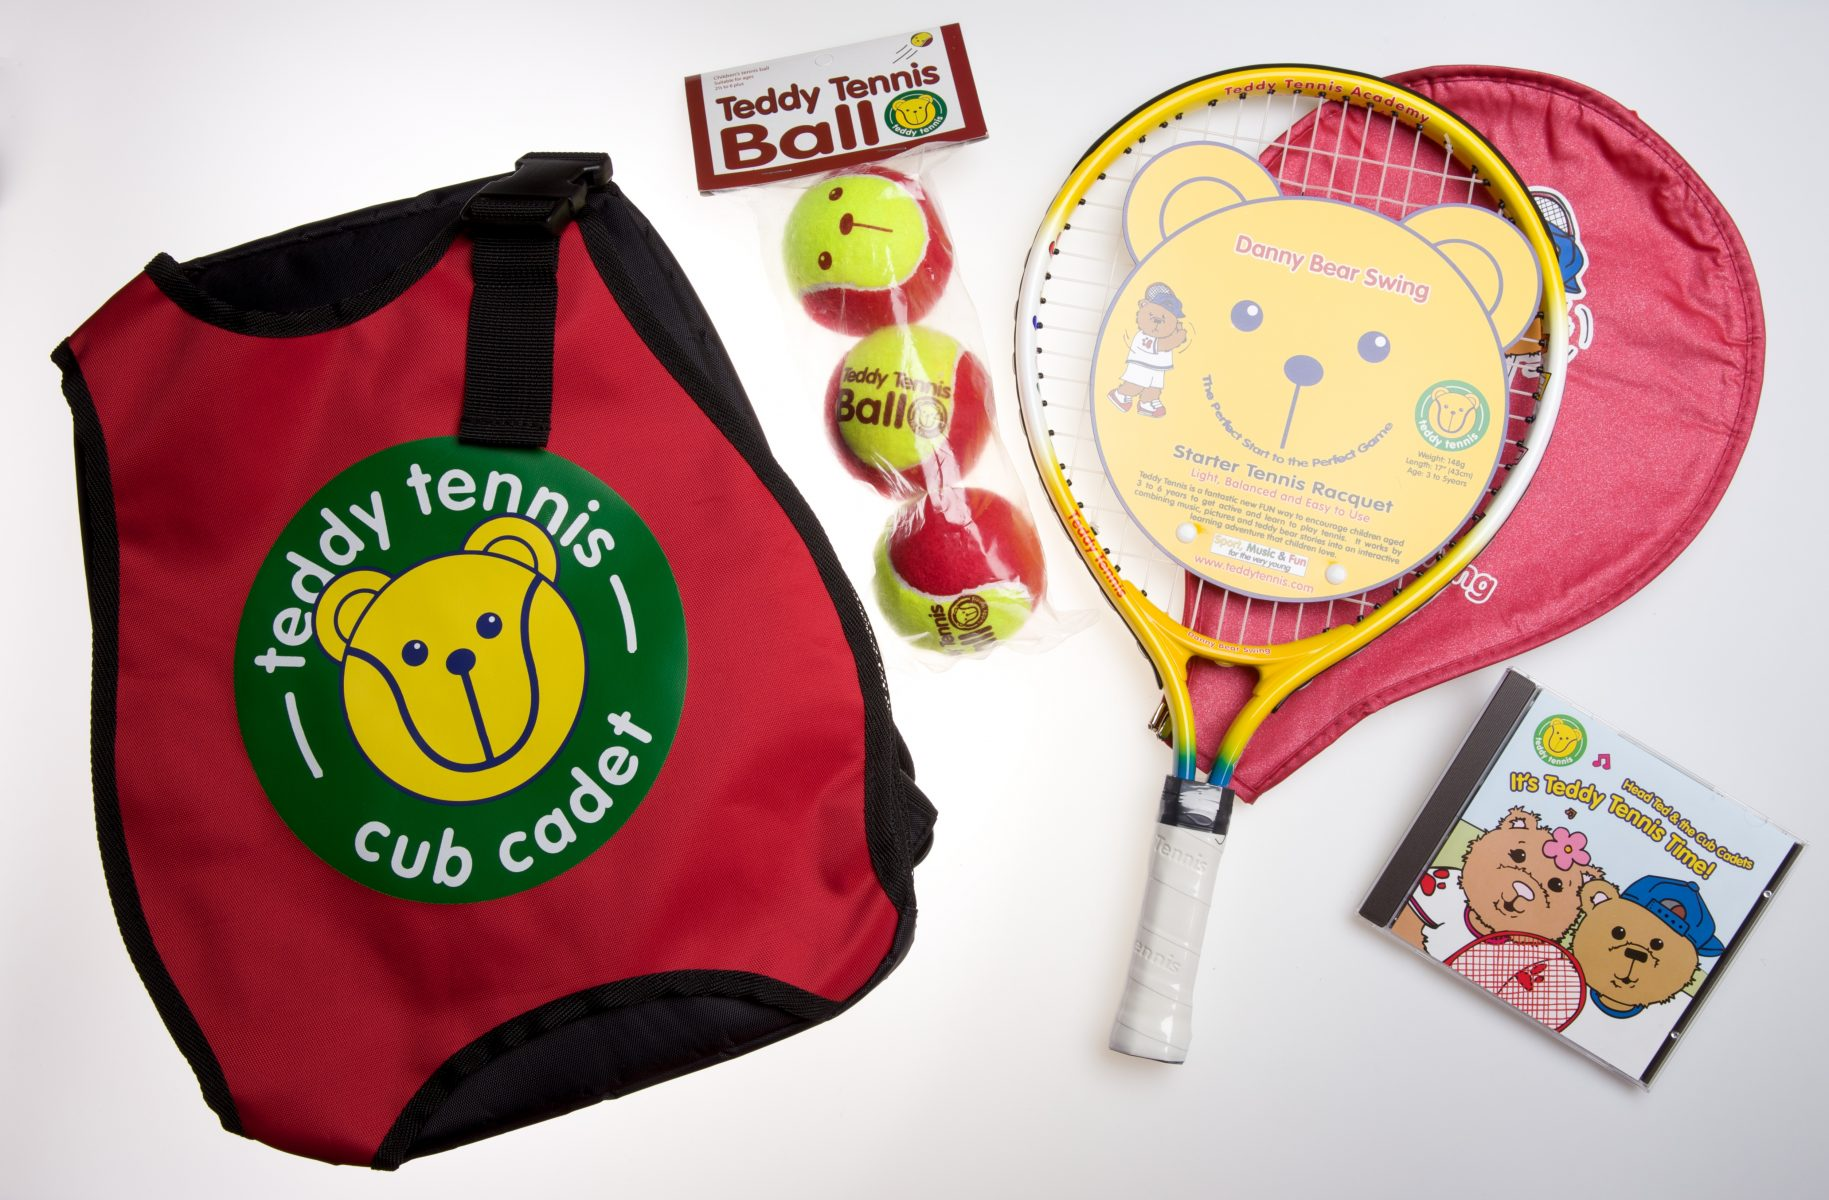 Tennis Set For Children Aged 2½ To 4 Years